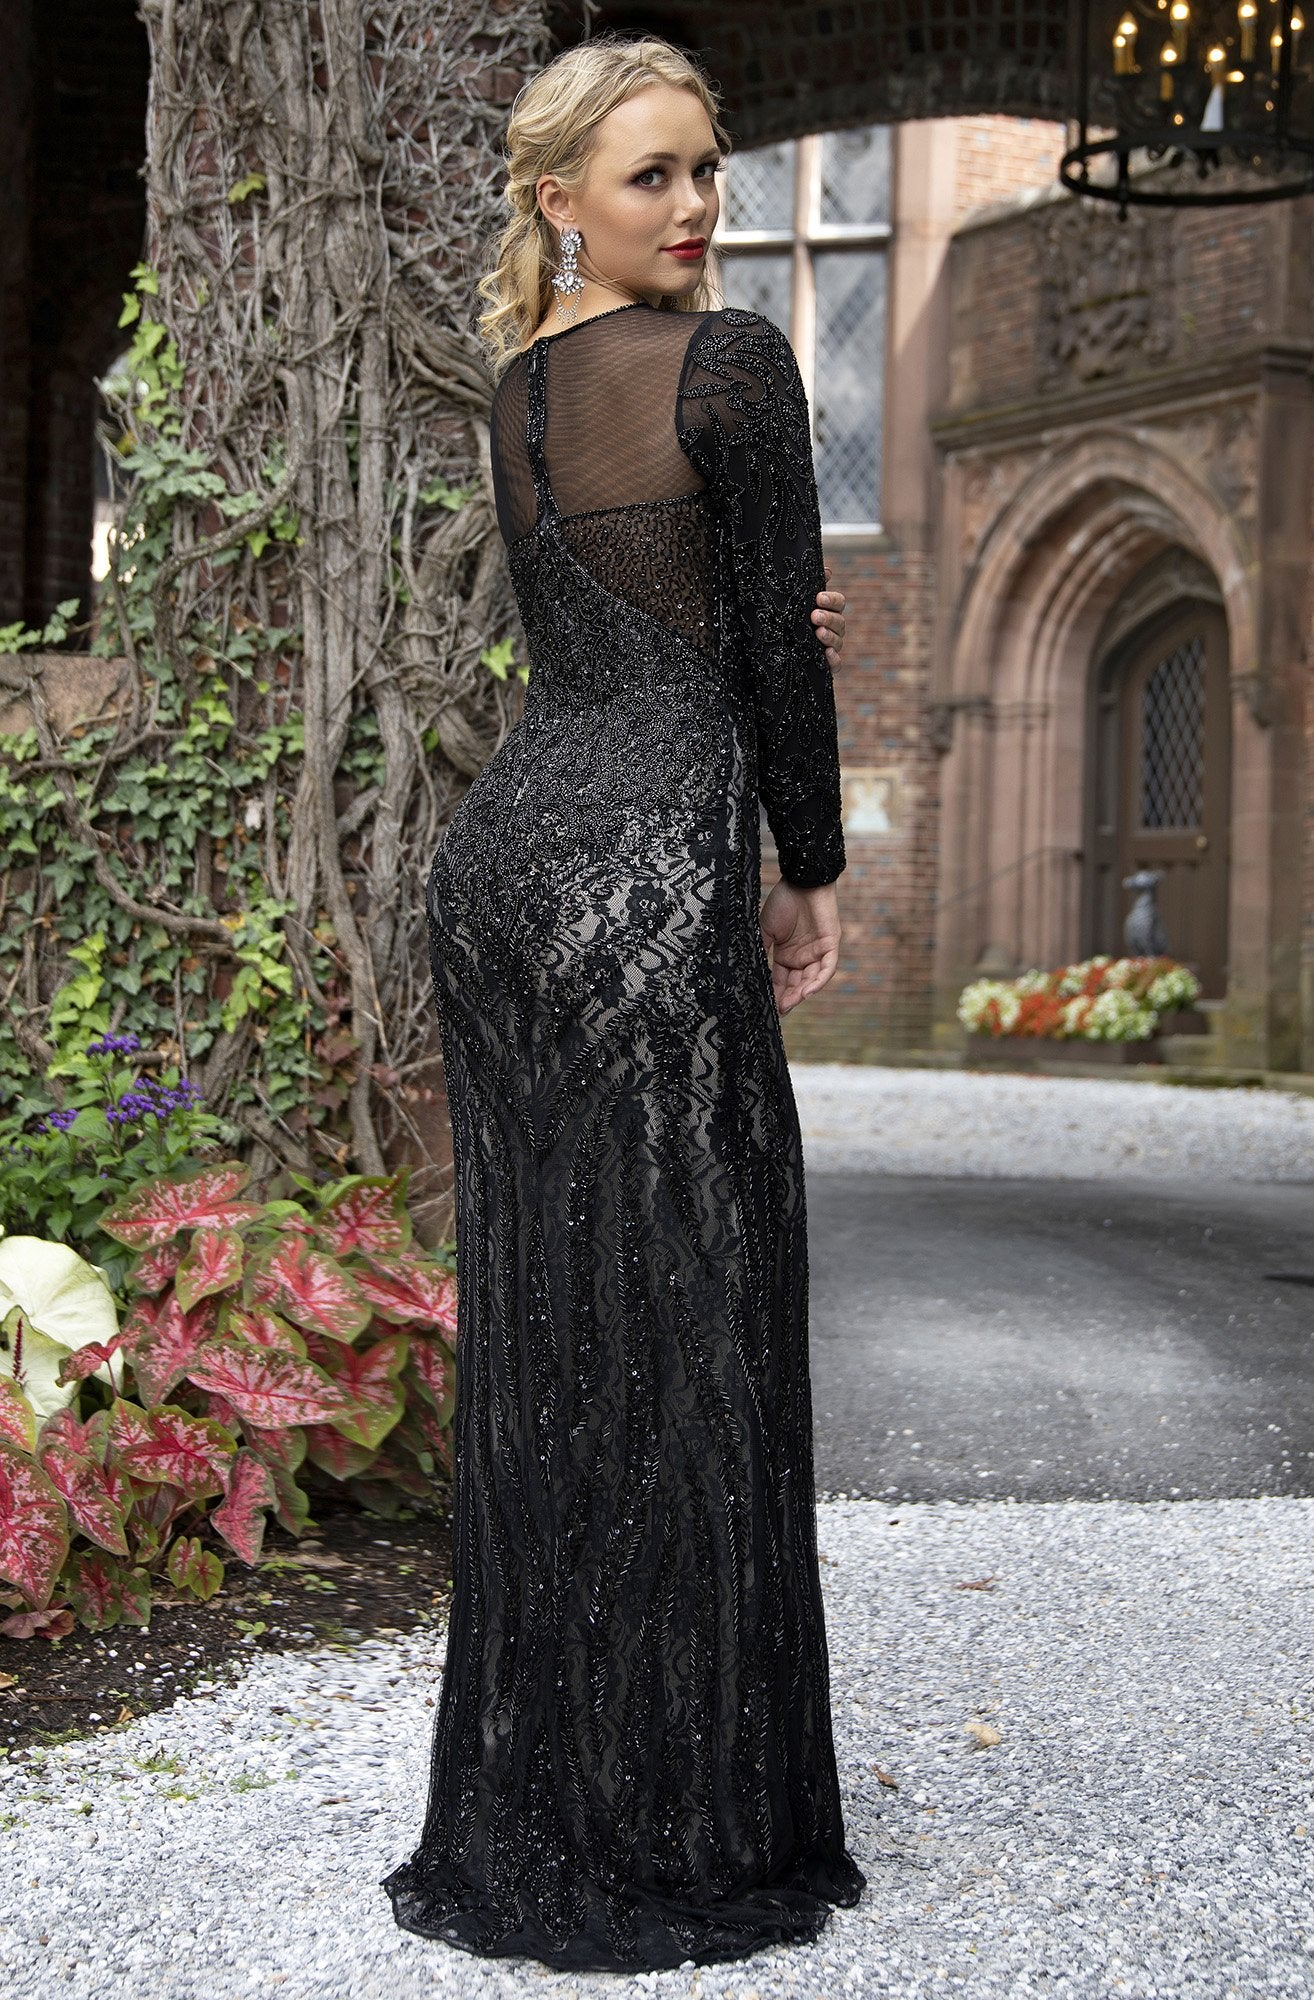 Primavera Couture - 3192 Sequined Long Sleeves Sheath Gown In Black